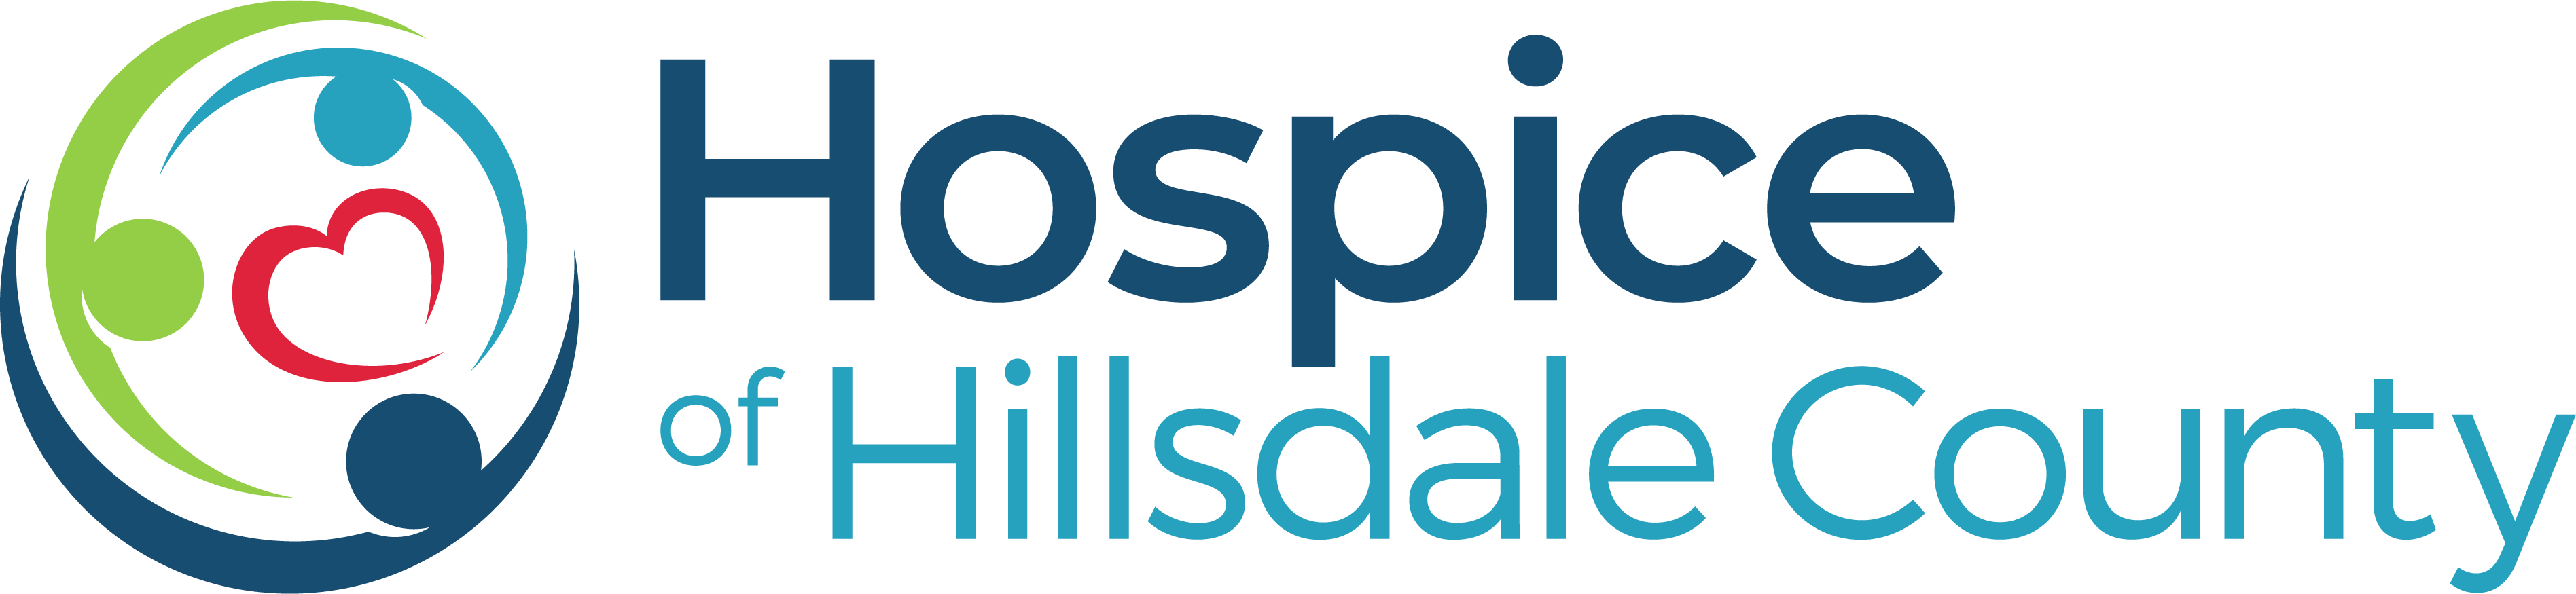 Hospice of Hillsdale County logo